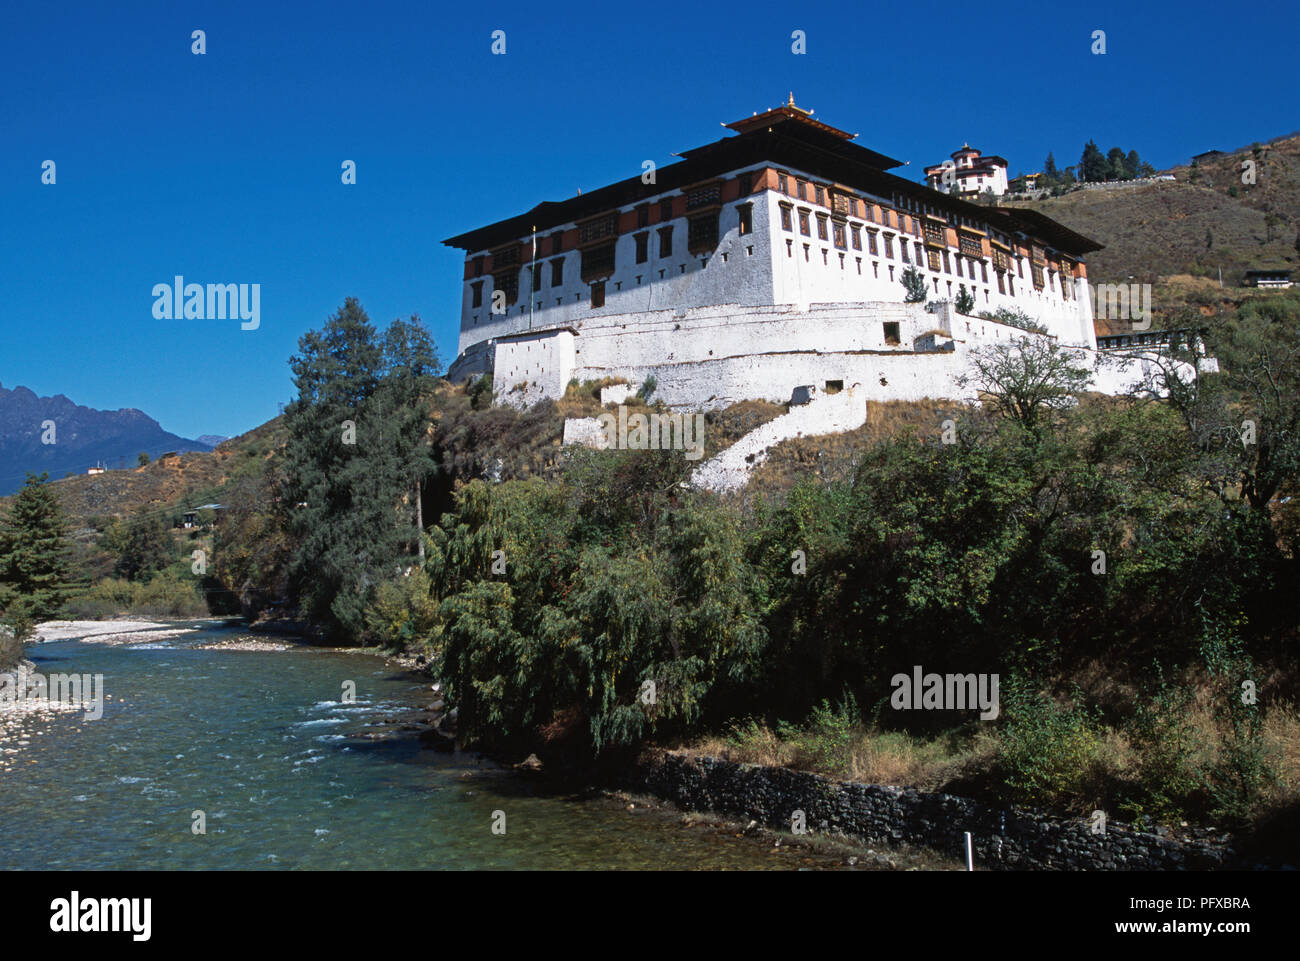 Rinpung Dzong and Paro Chhu river in Paro district, Bhutan - Stock Image